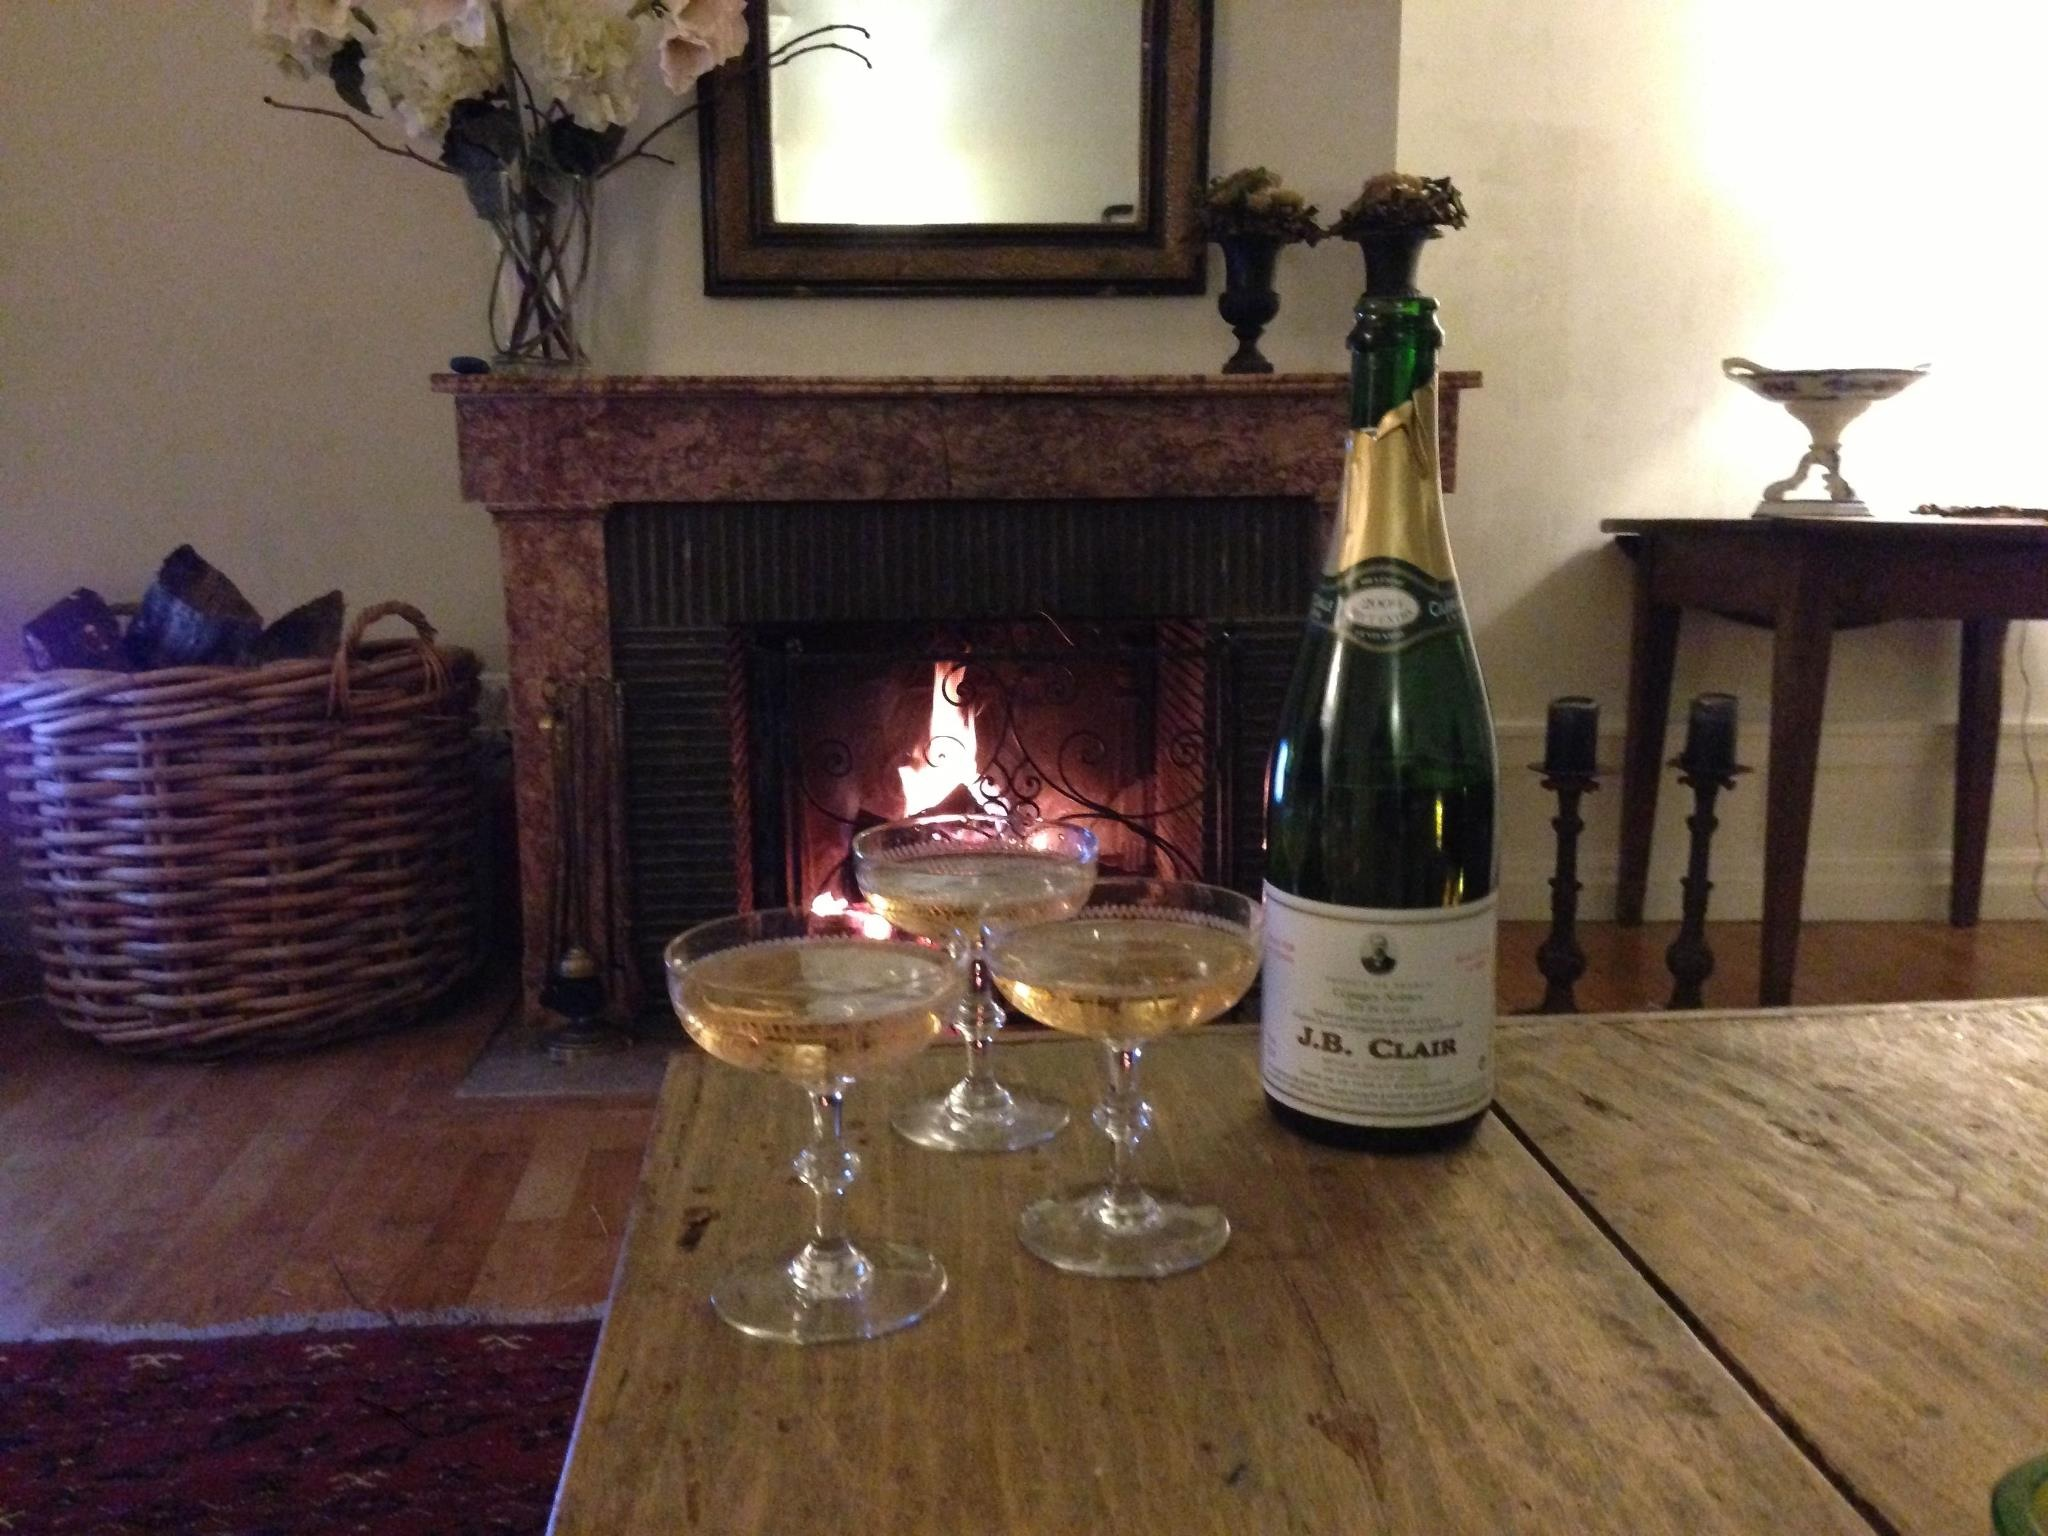 Log fire at Maison Les Bardons en enjoying champagne from J.b. Clair